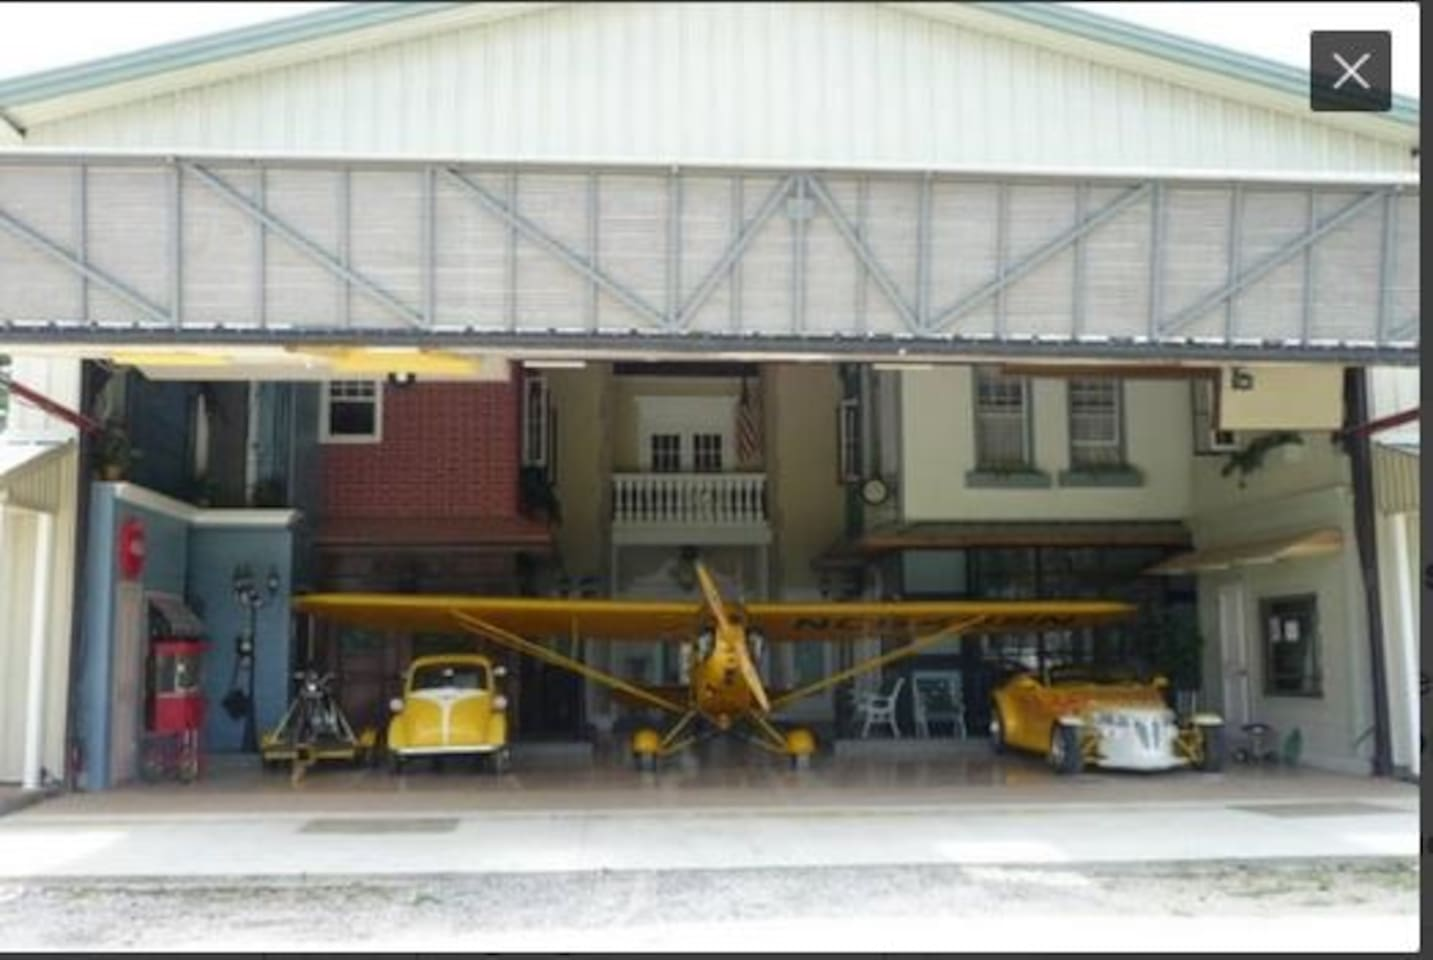 Airplane Hangar also available on Airbnb located on the same property.https://www.airbnb.com/rooms/2713449?s=67&shared_item_type=1&virality_entry_point=1&sharer_id=13885996